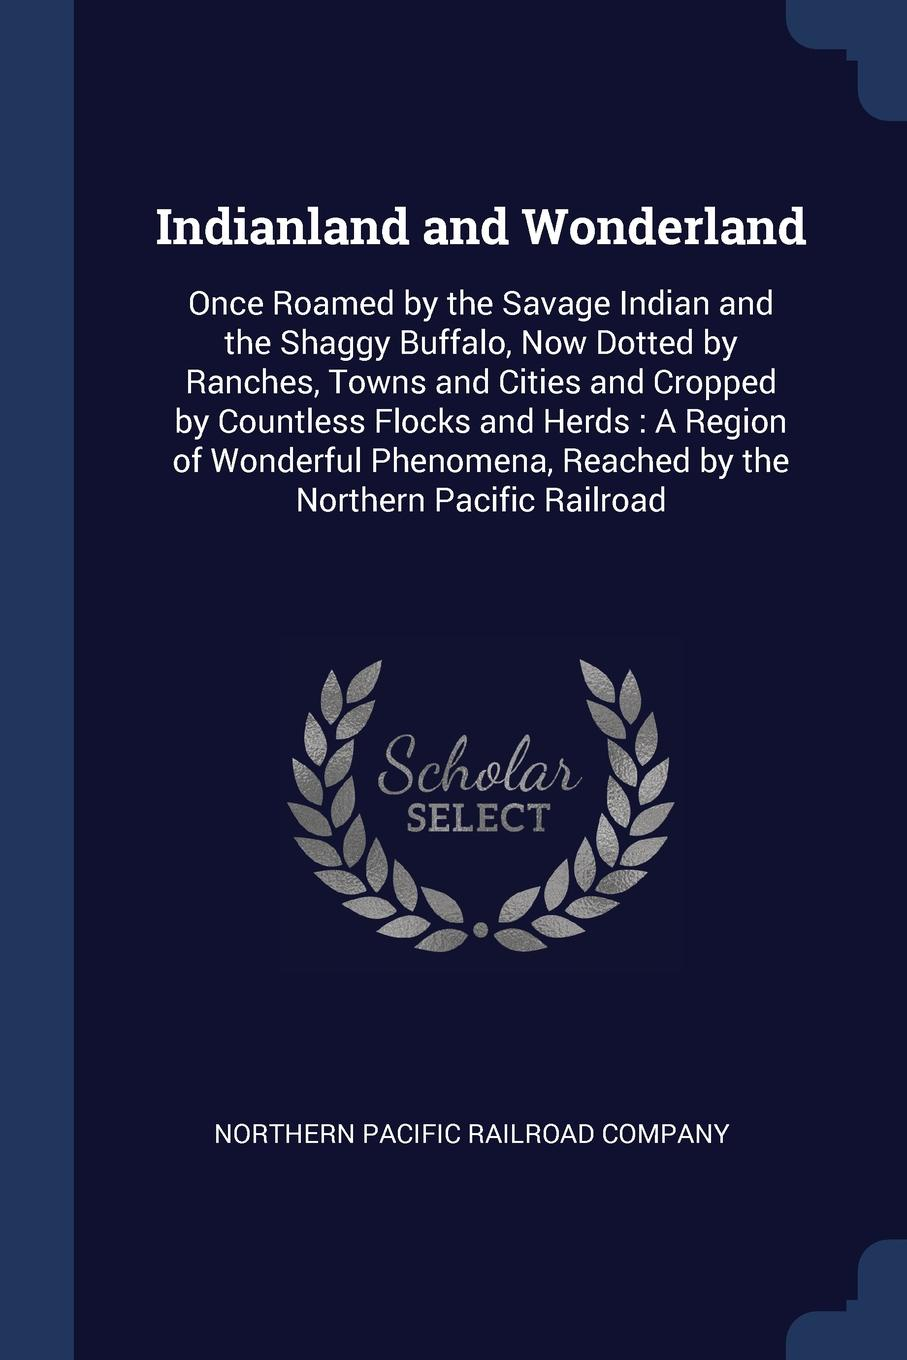 Indianland and Wonderland. Once Roamed by the Savage Indian and the Shaggy Buffalo, Now Dotted by Ranches, Towns and Cities and Cropped by Countless Flocks and Herds : A Region of Wonderful Phenomena, Reached by the Northern Pacific Railroad.